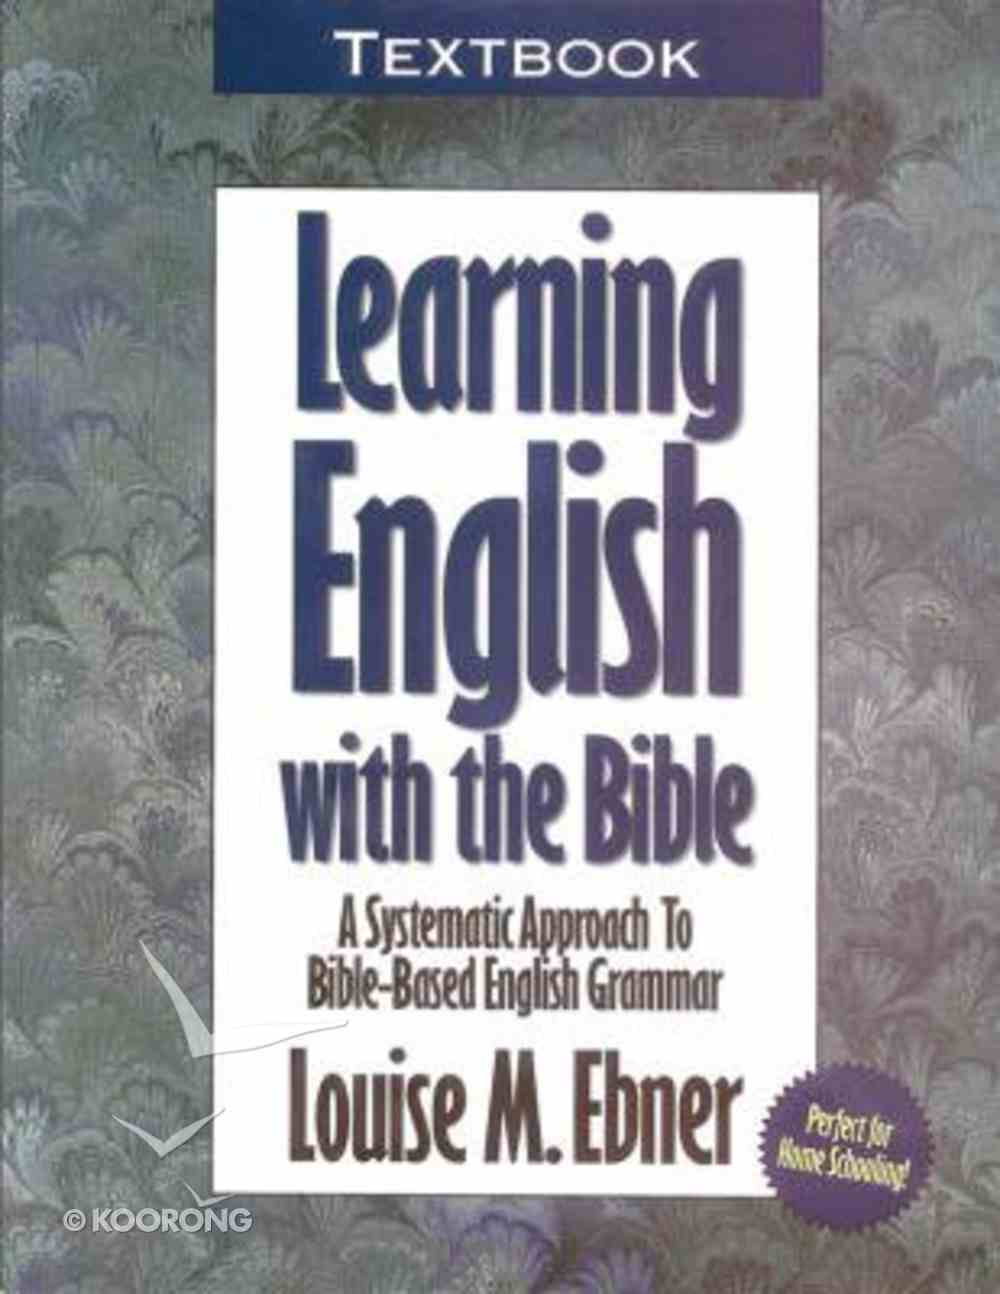 Learning English With the Bible (Textbook) Paperback